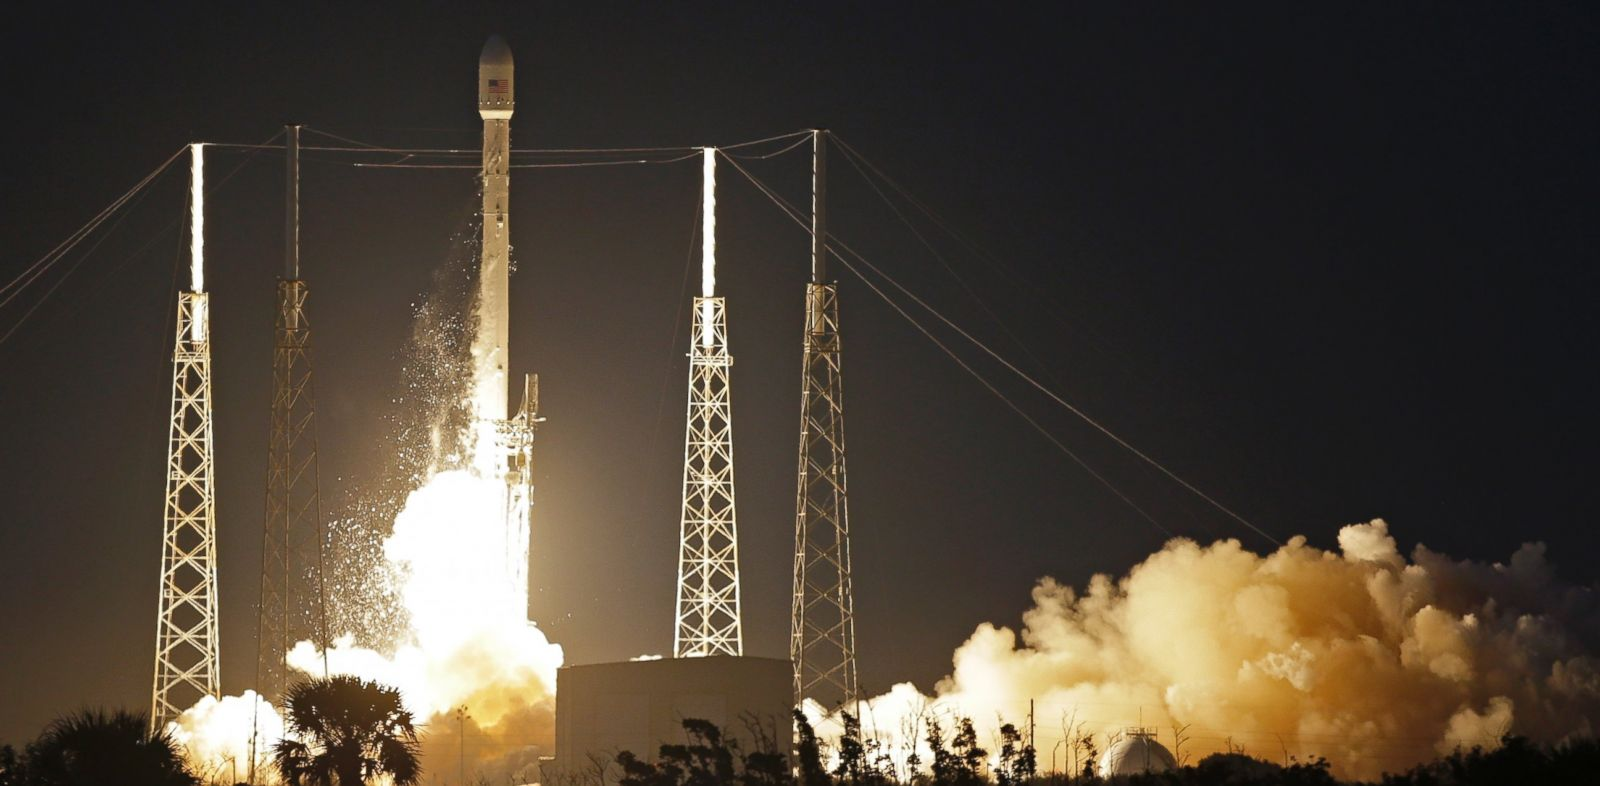 PHOTO: A Falcon 9 SpaceX rocket lifts off from Launch Complex 40 at the Cape Canaveral Air Force Station in Cape Canaveral, Fla., Dec. 3, 2013.